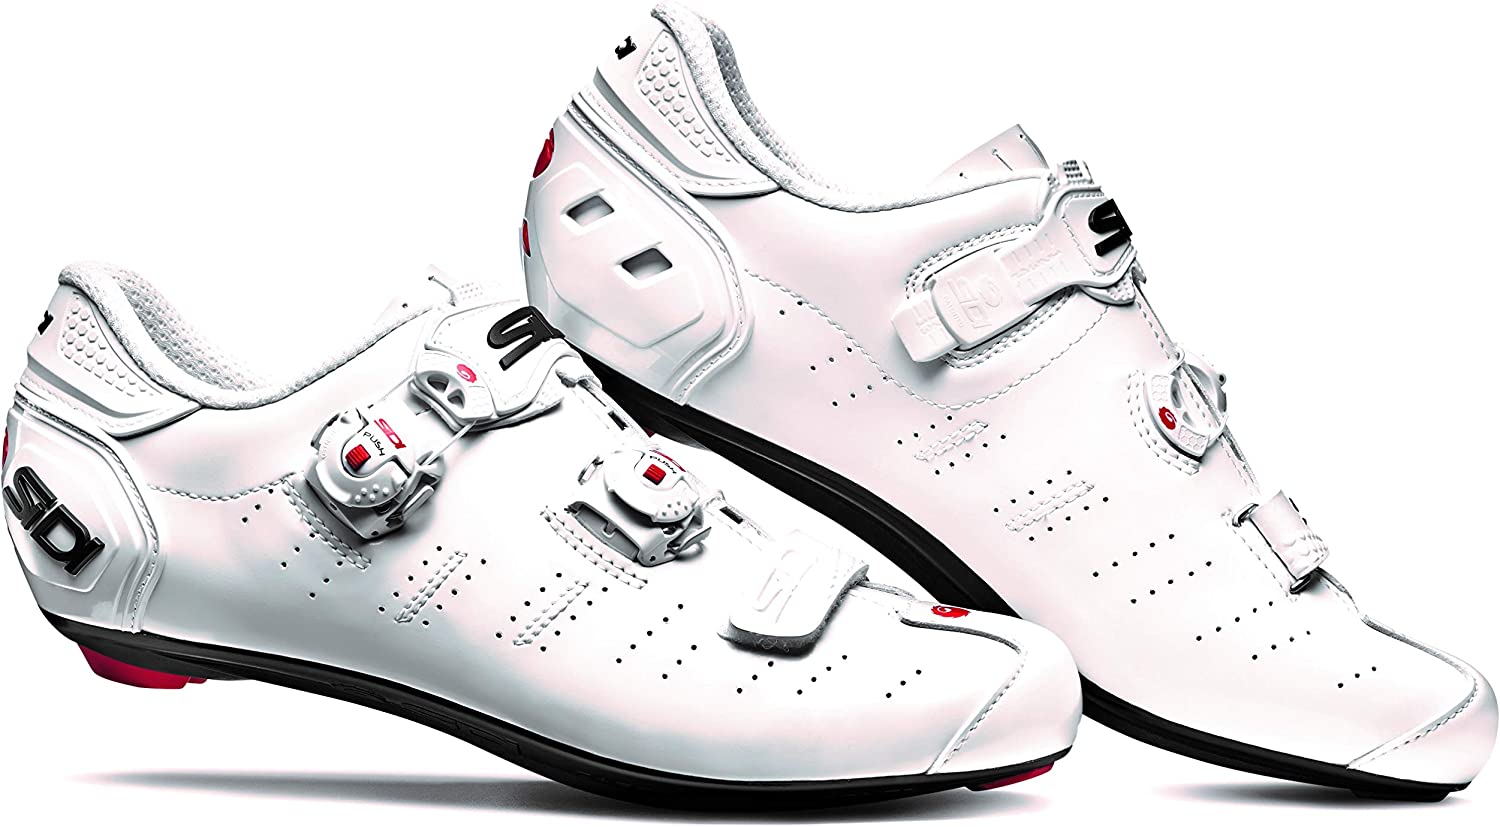 Ergo 5 Carbon Road Cycling Shoes 44.5, White//White